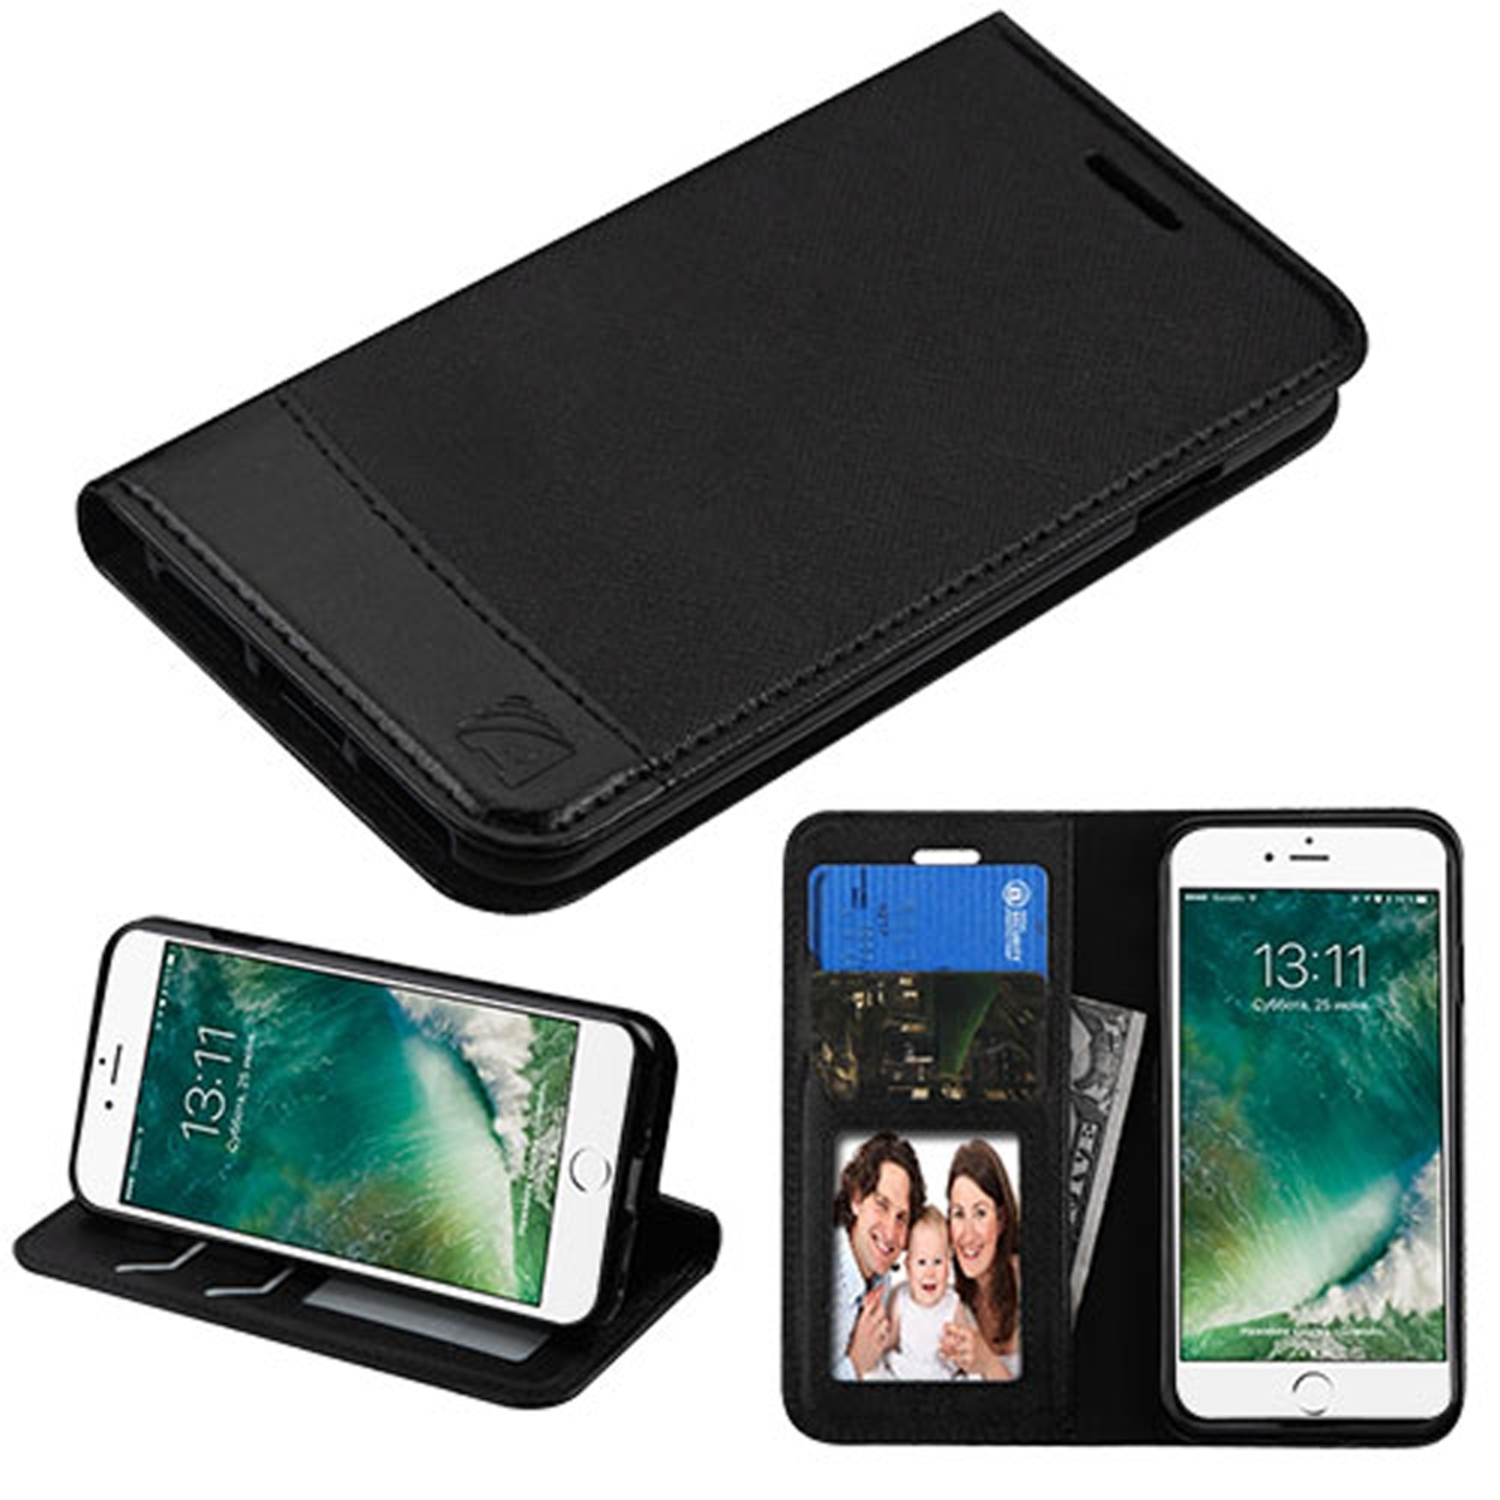 Insten For Apple iPhone 8 / iPhone 7 - Slim Fit Leather Folio Wallet Case Stand Cover with Photo display & Cash ID Credit Card slots - Black